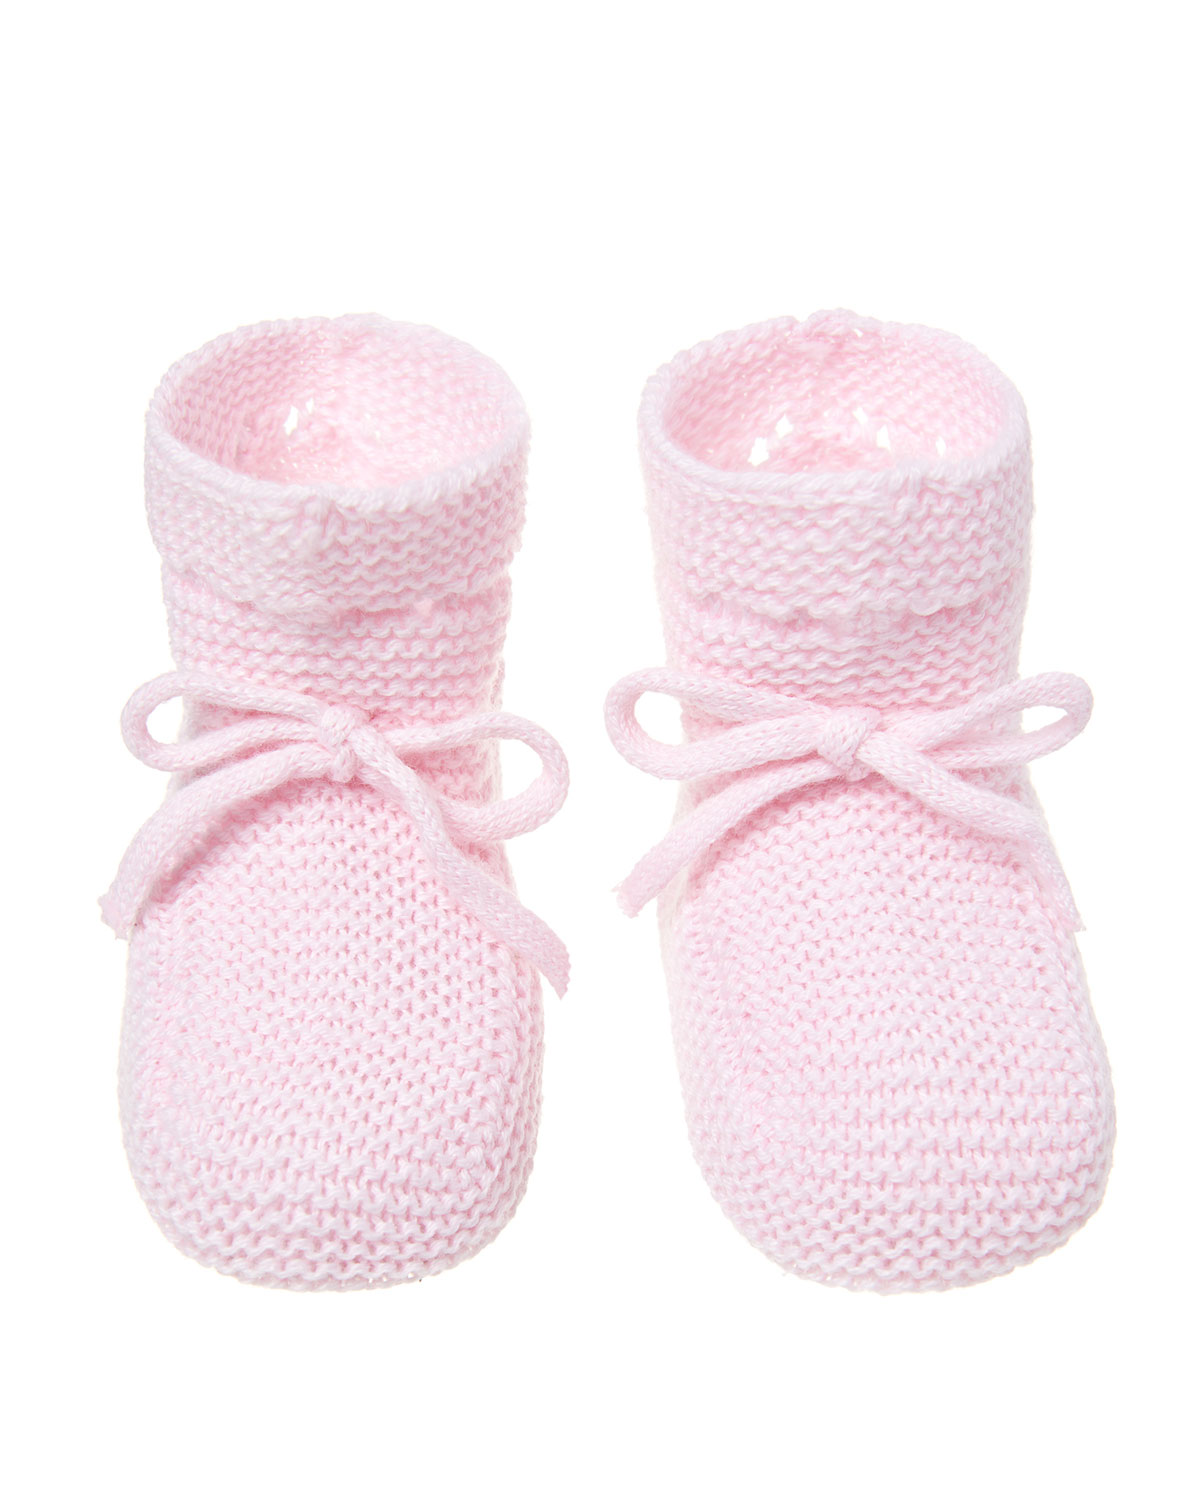 Pili Carrera Knits KNITTED BOOTIES, BABY